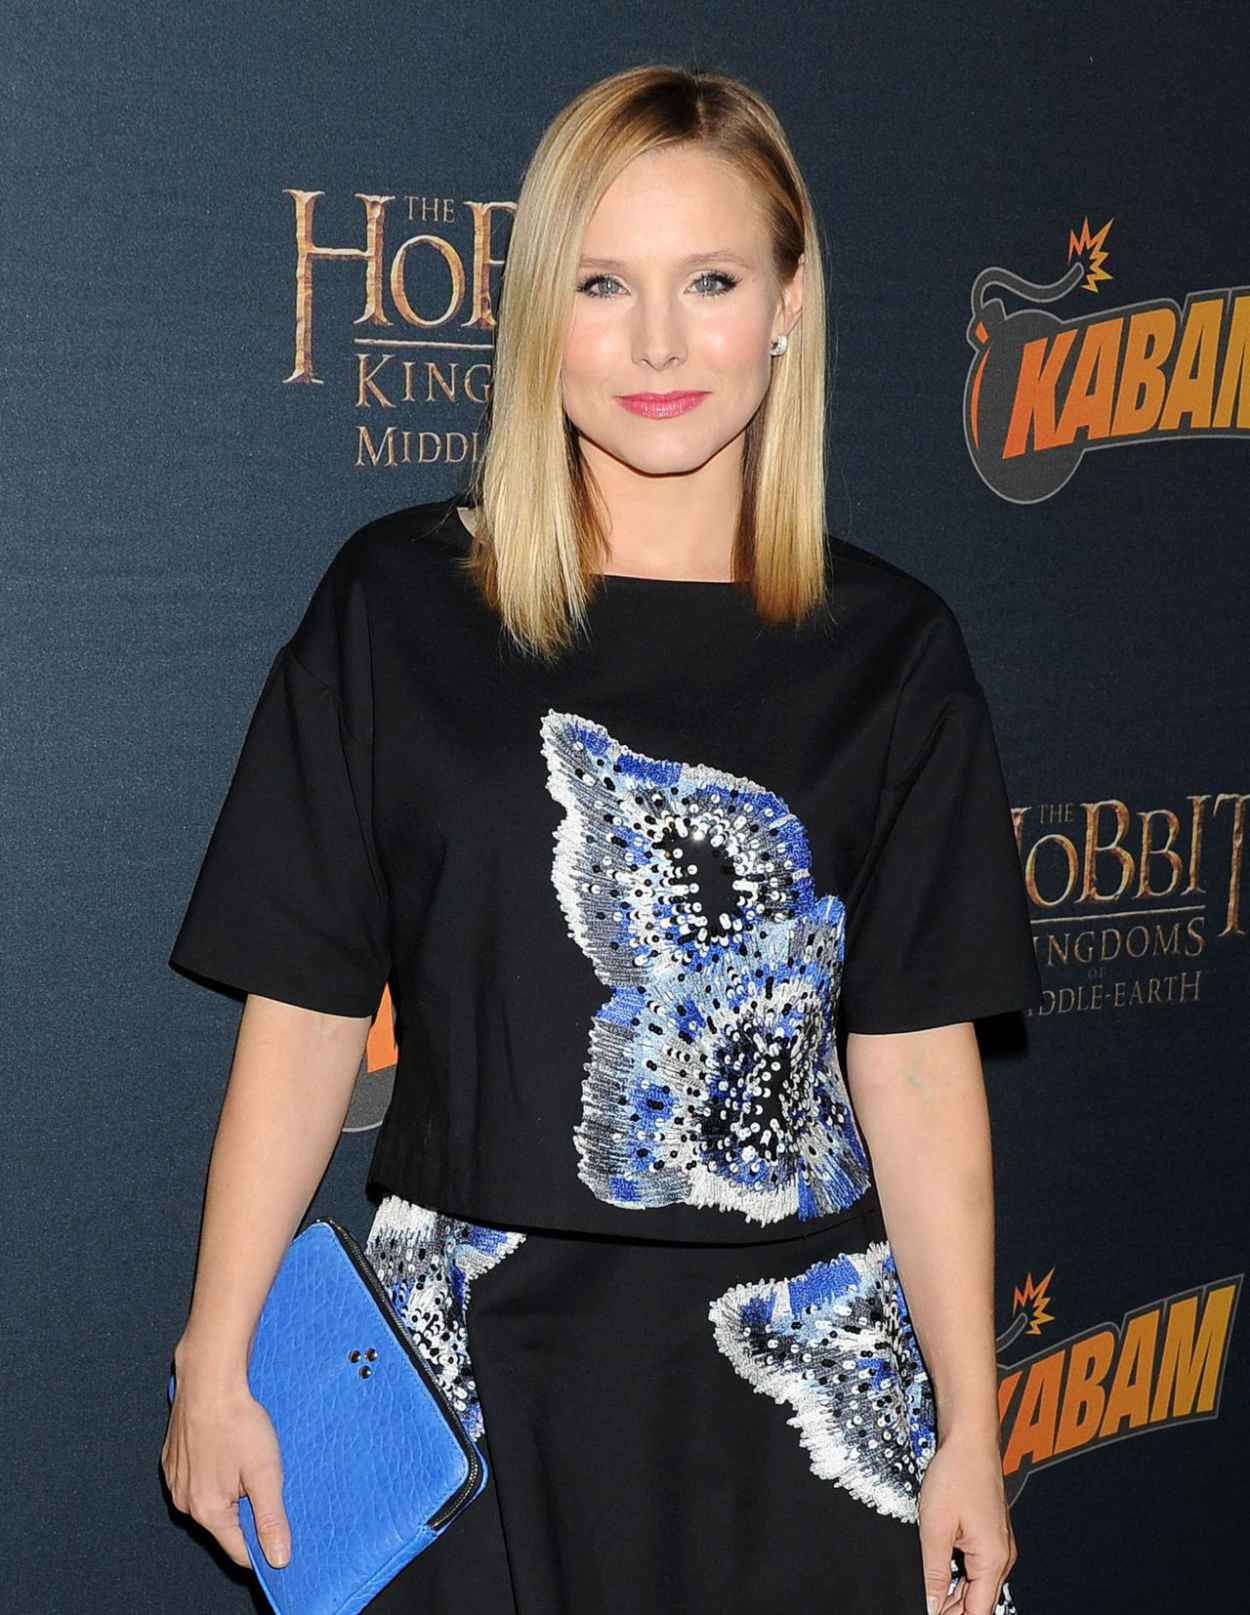 Kristen Bell at THE HOBBIT: THE DESOLATION OF SMAUG Expansion Kabam Mobile Game Party - Dec. 2015-1